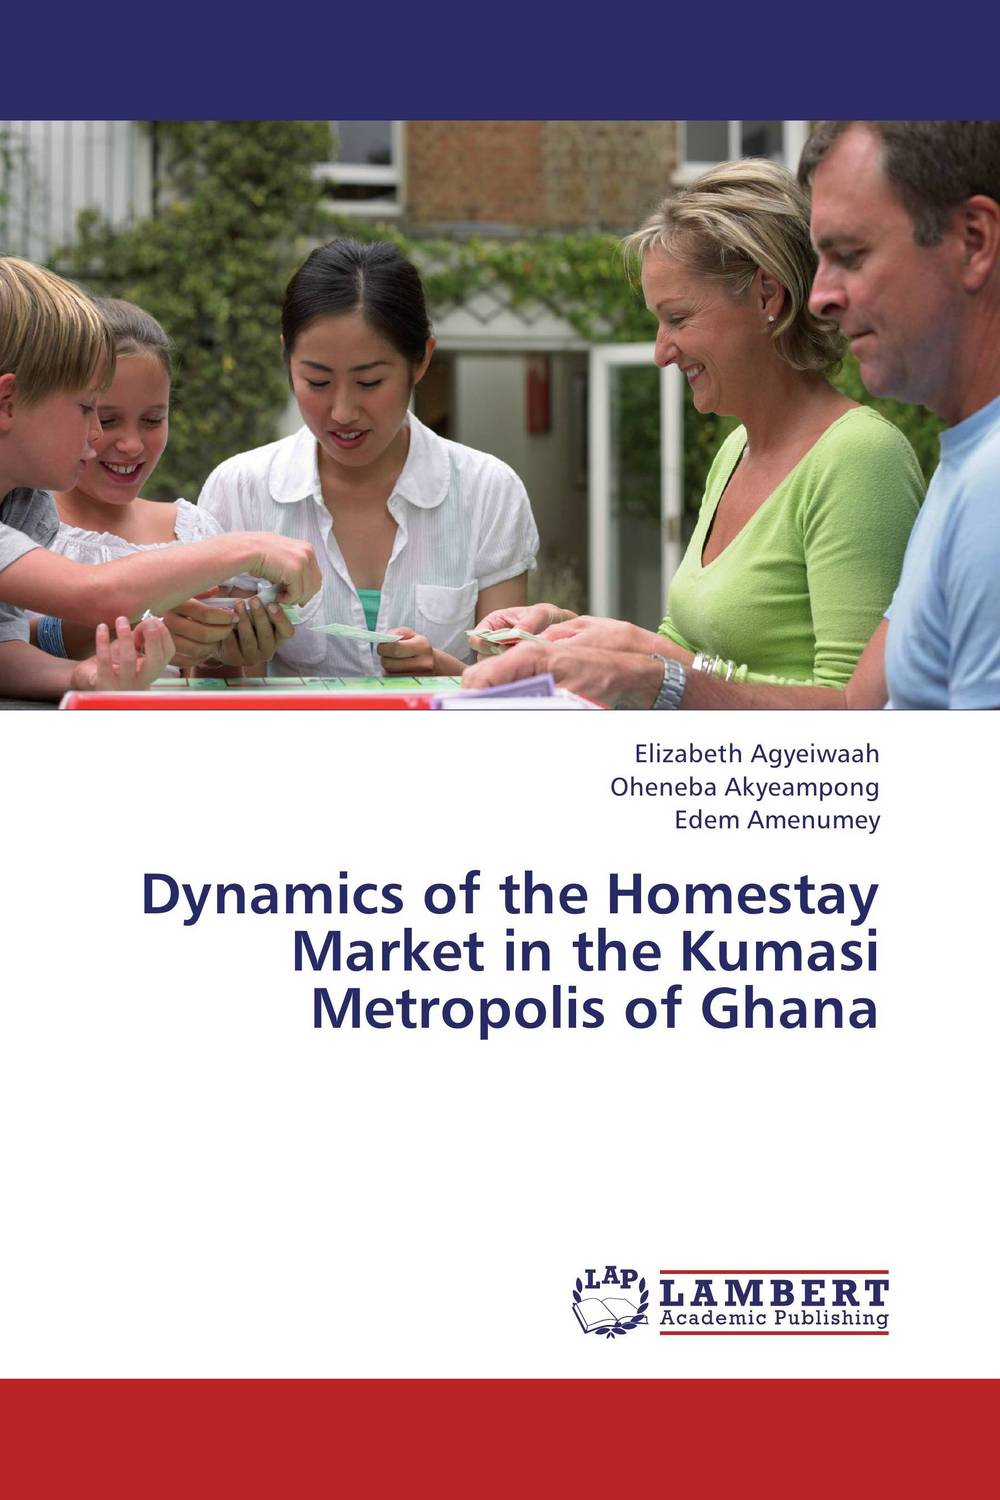 Dynamics of the Homestay Market in the Kumasi Metropolis of Ghana